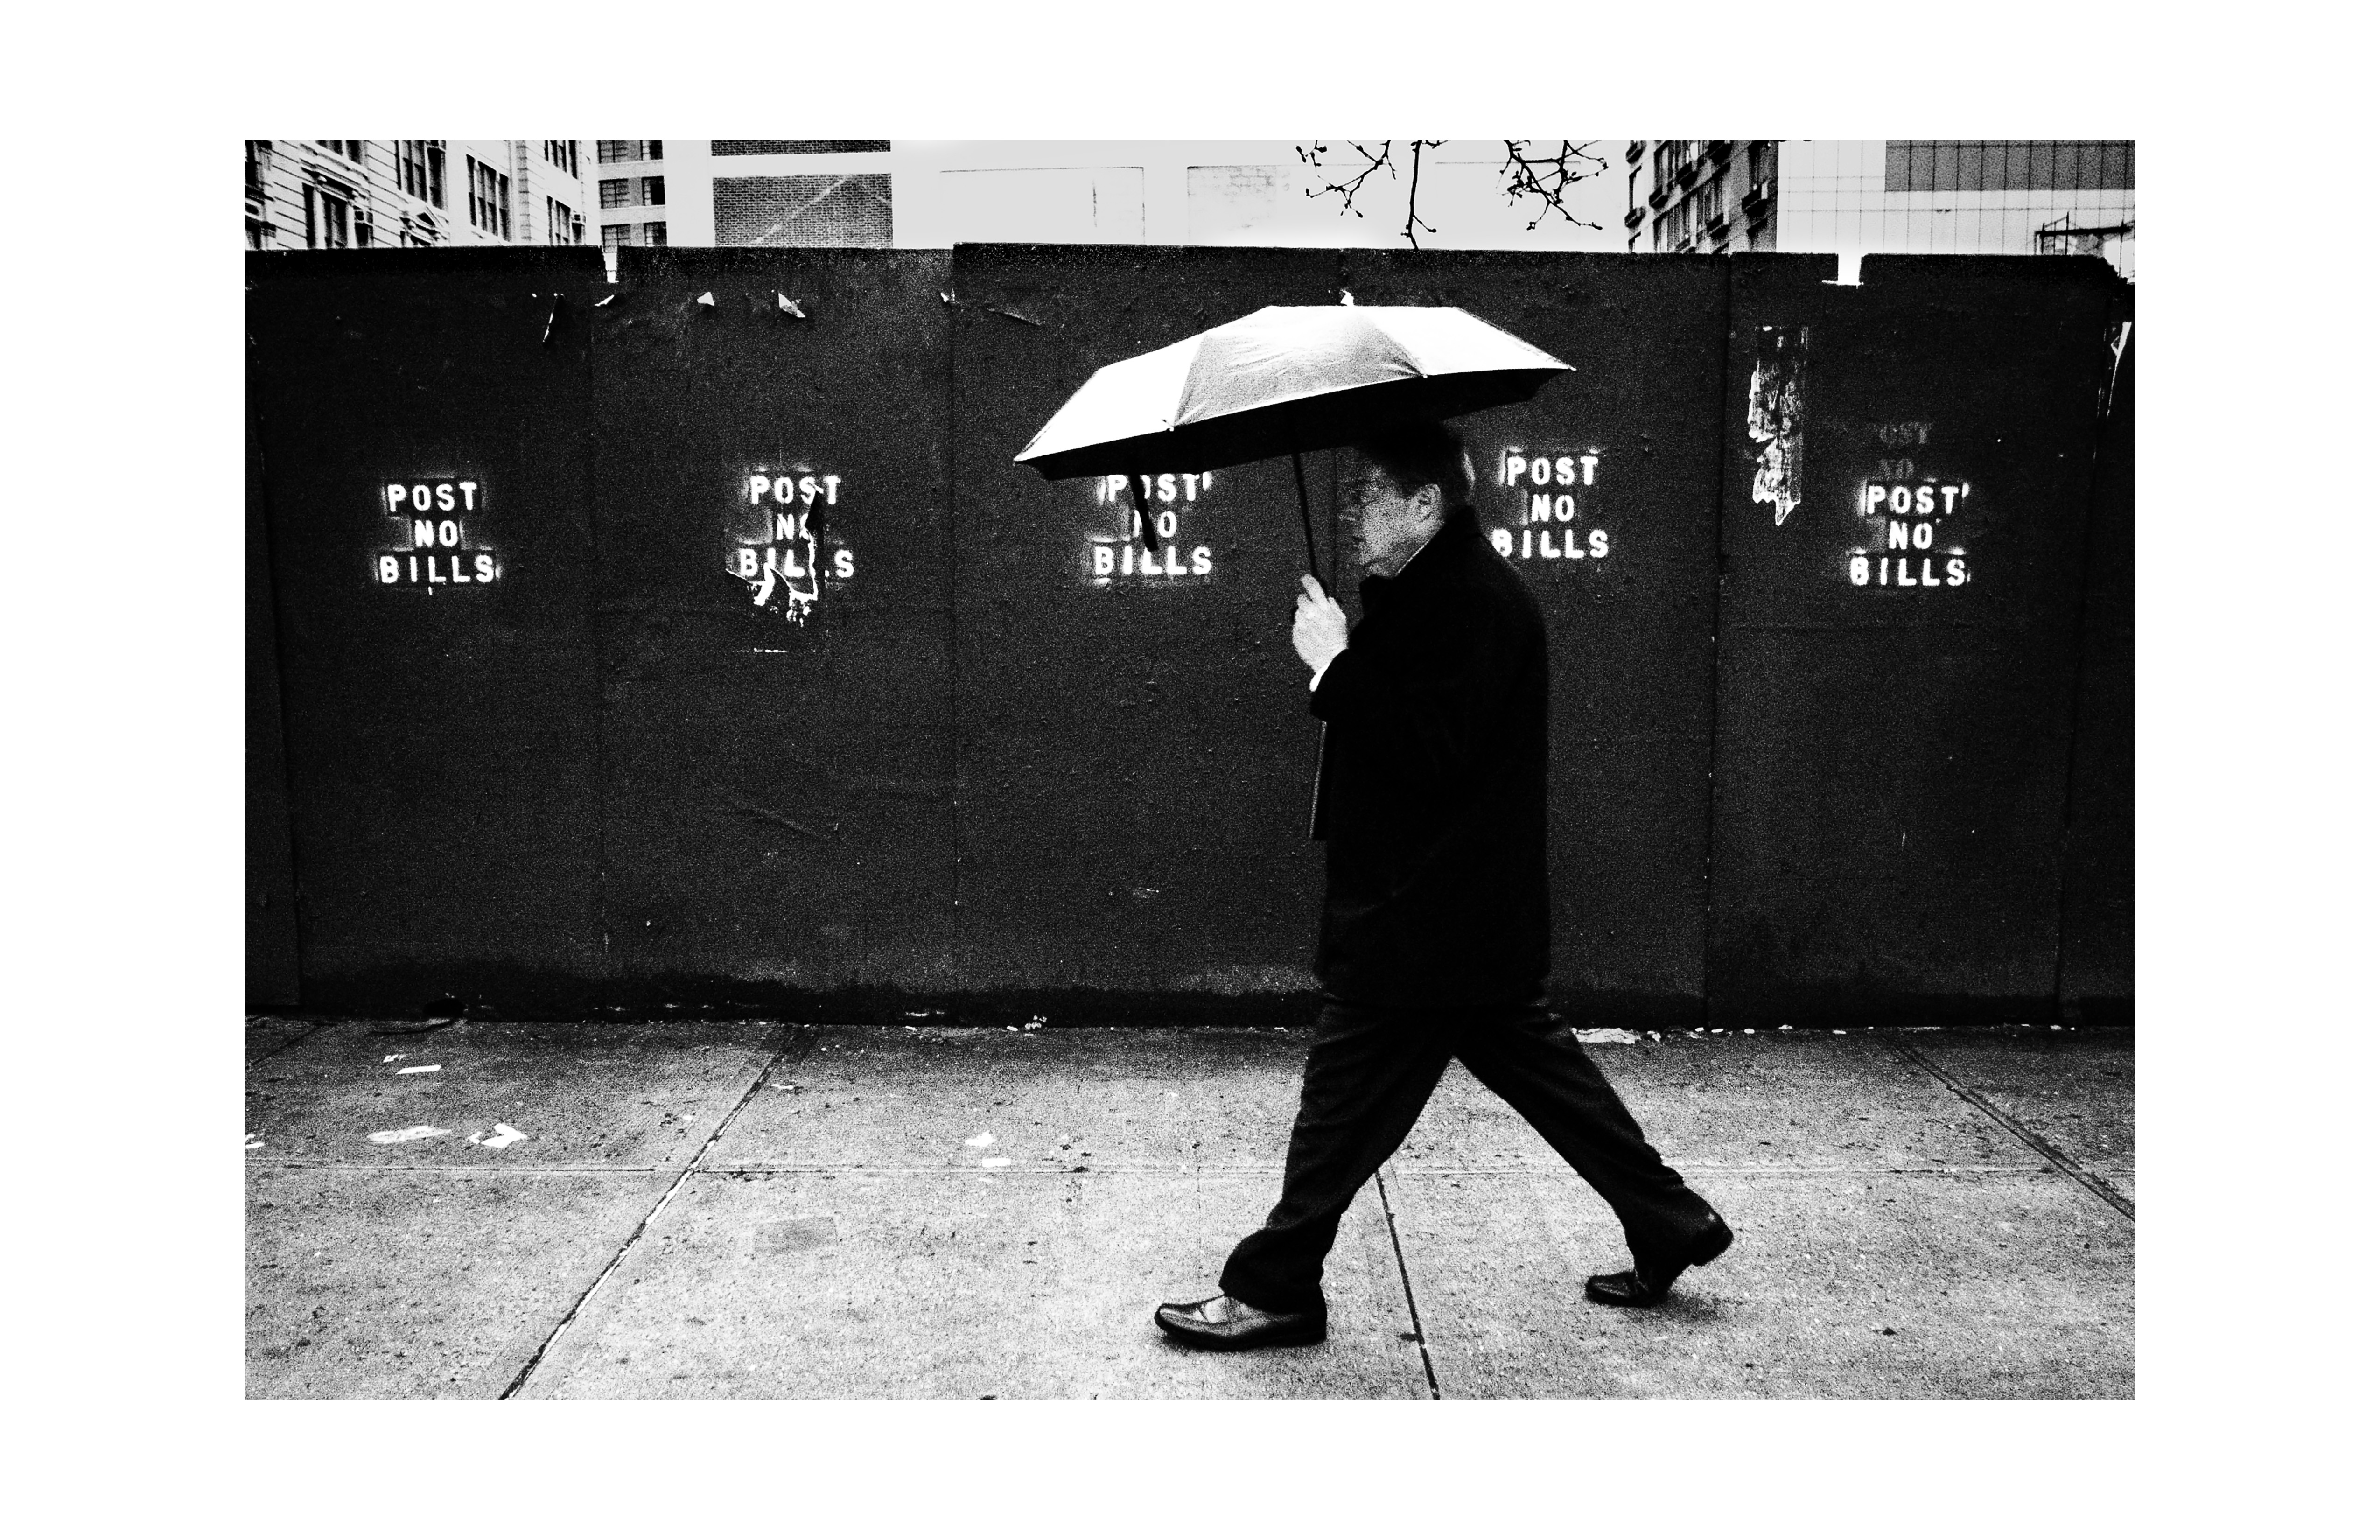 Photograph of man walking in the rain with his umbrella